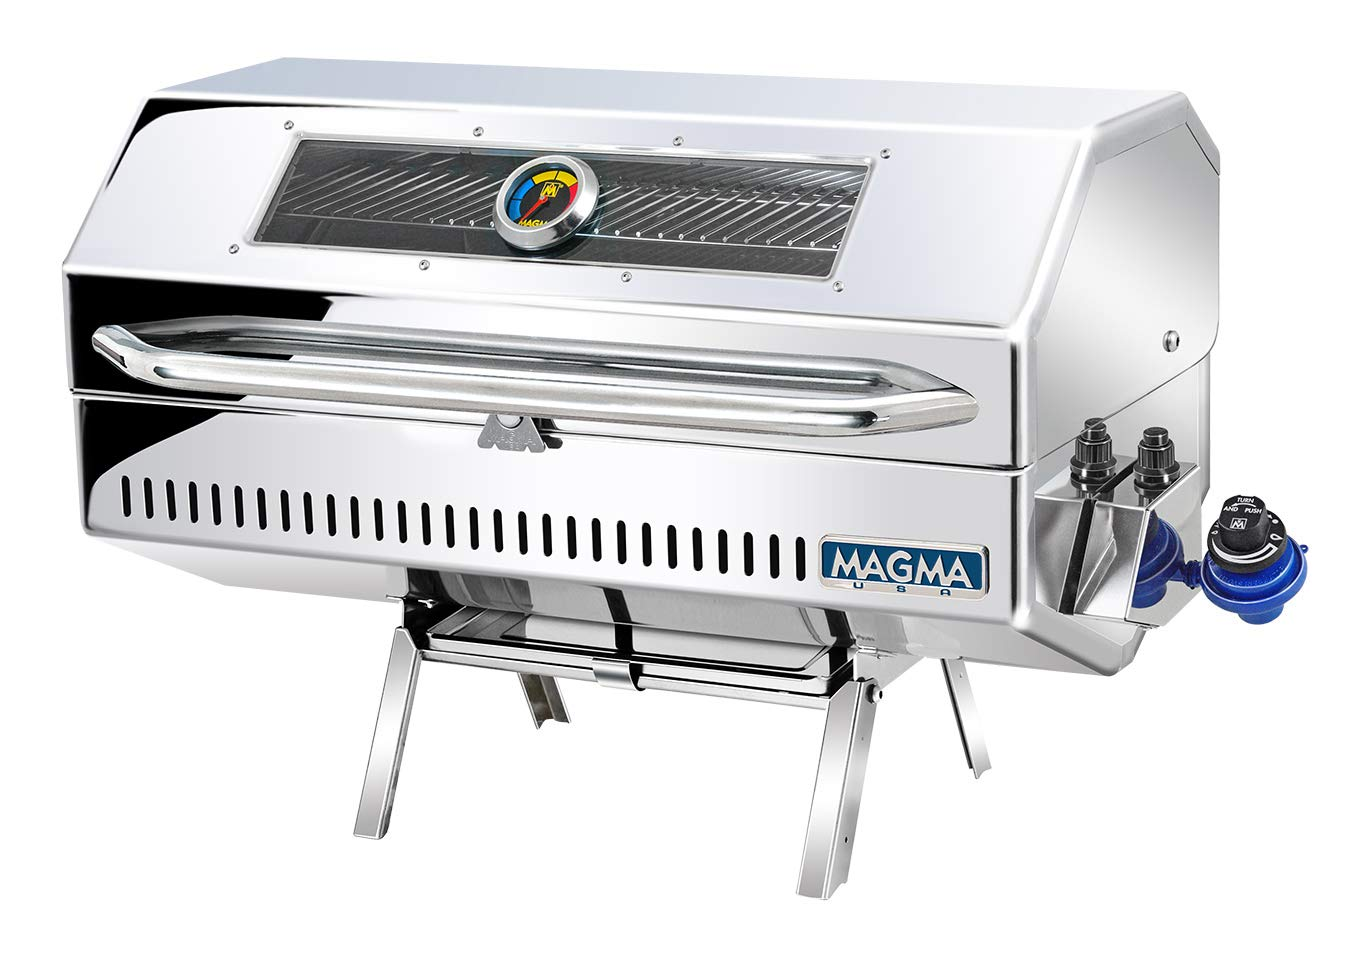 Magma Products, A10-1225-2GS Monterey 2 Infra Red Gourmet Series Gas Grill, Polished Stainless Steel by Magma